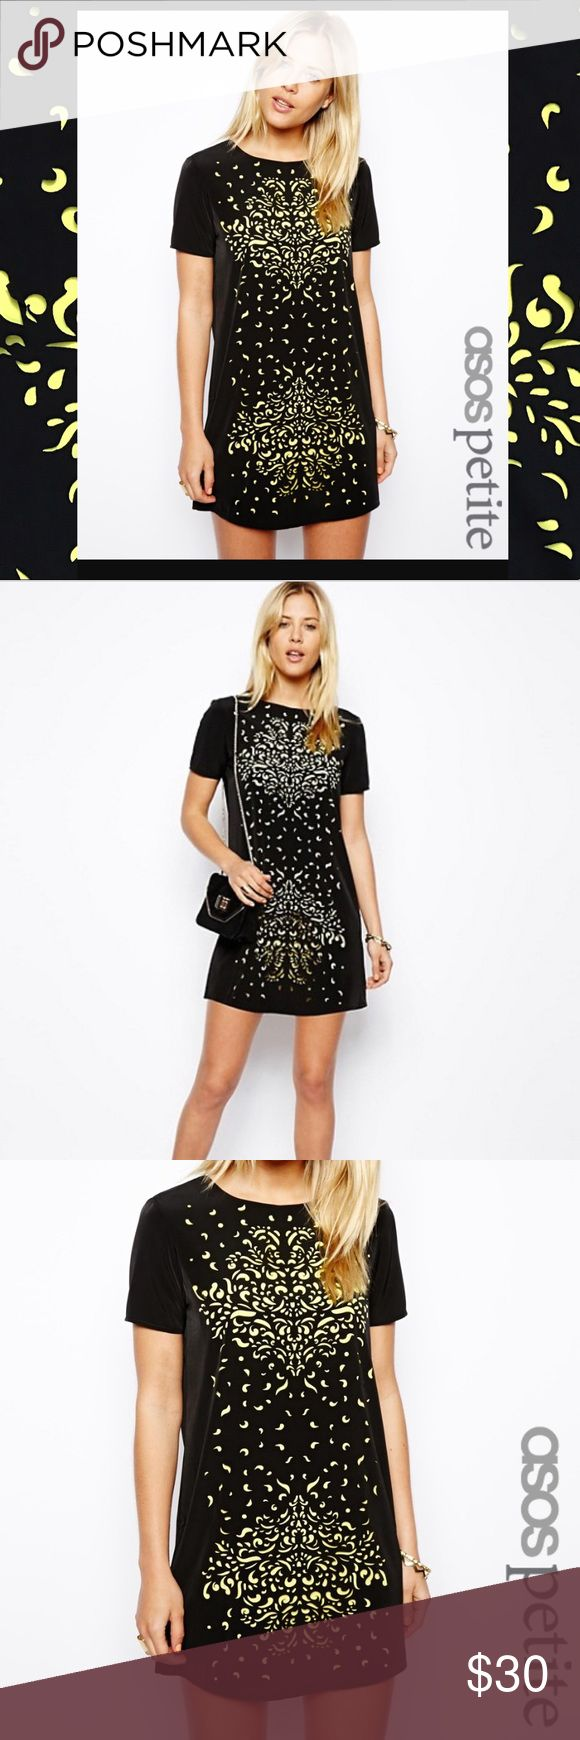 ASOS PETITE T-Shirt Dress With Lasercut Detail ASOS PETITE Exclusive T-Shirt Dress With Lasercut Detail. Black with neon yellow lining that shows brought to create the design. Excellent condition. ASOS Dresses